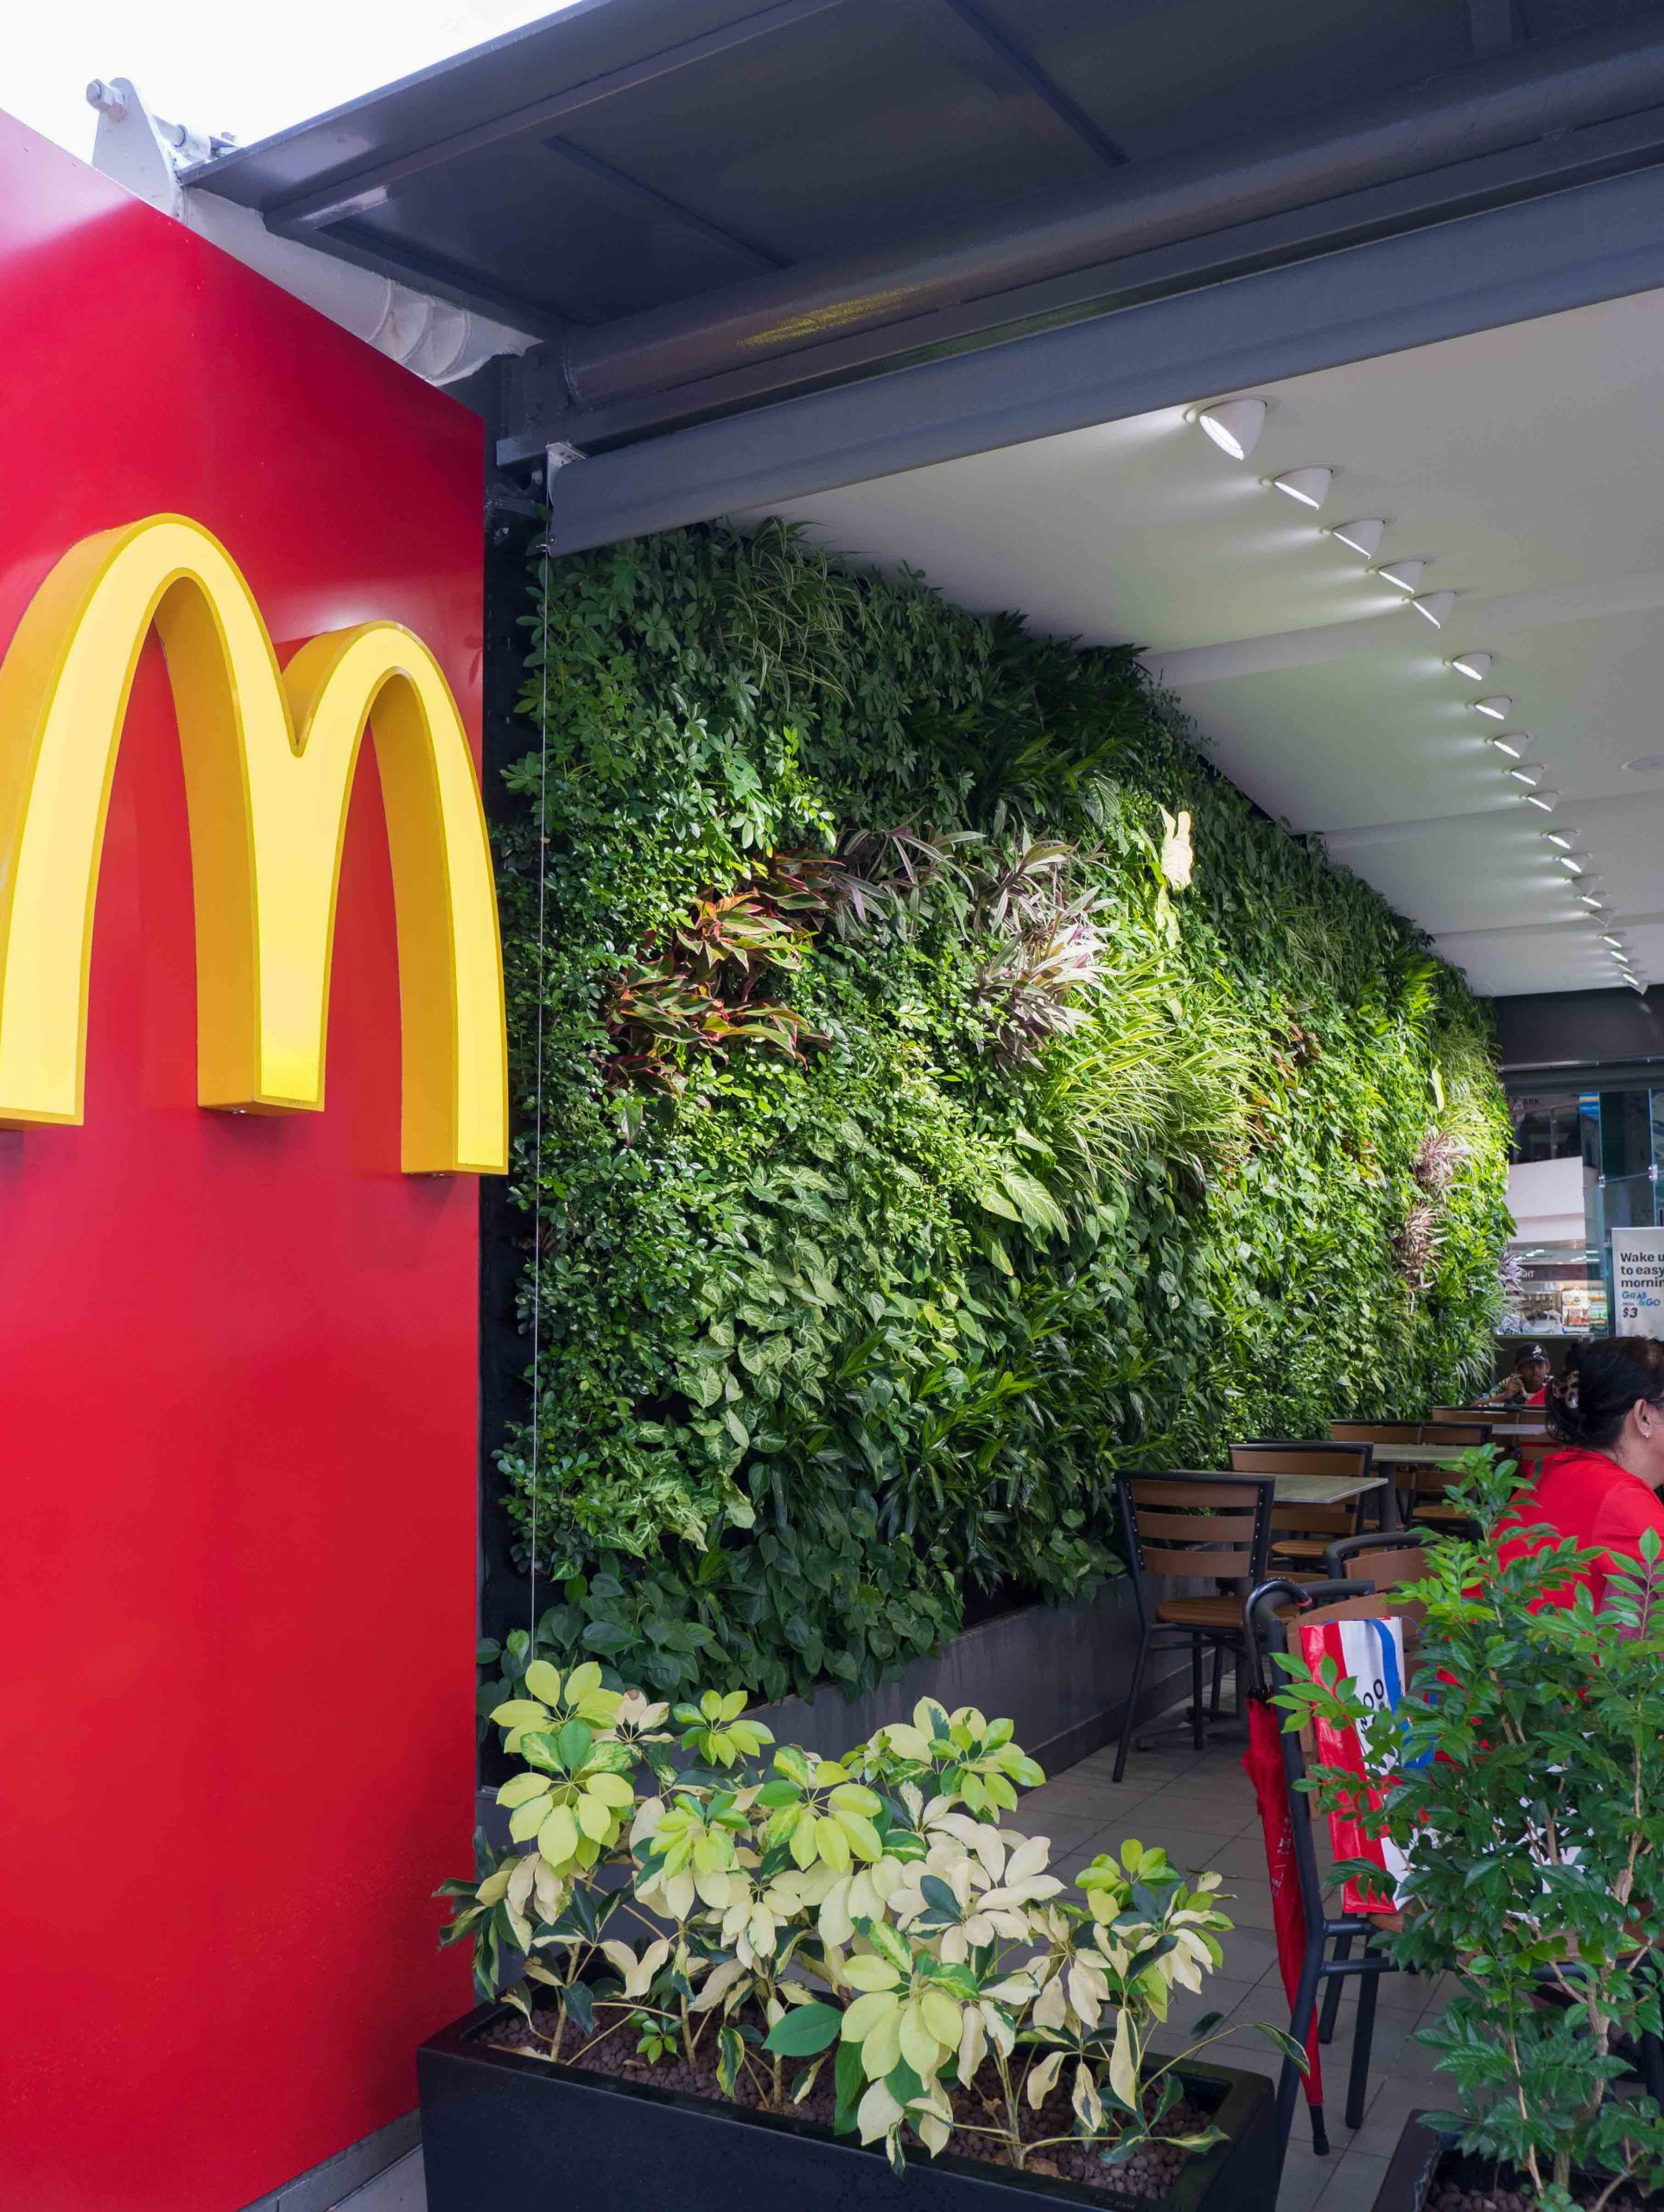 McDonalds Green Wall Singapore Indoor Portrait